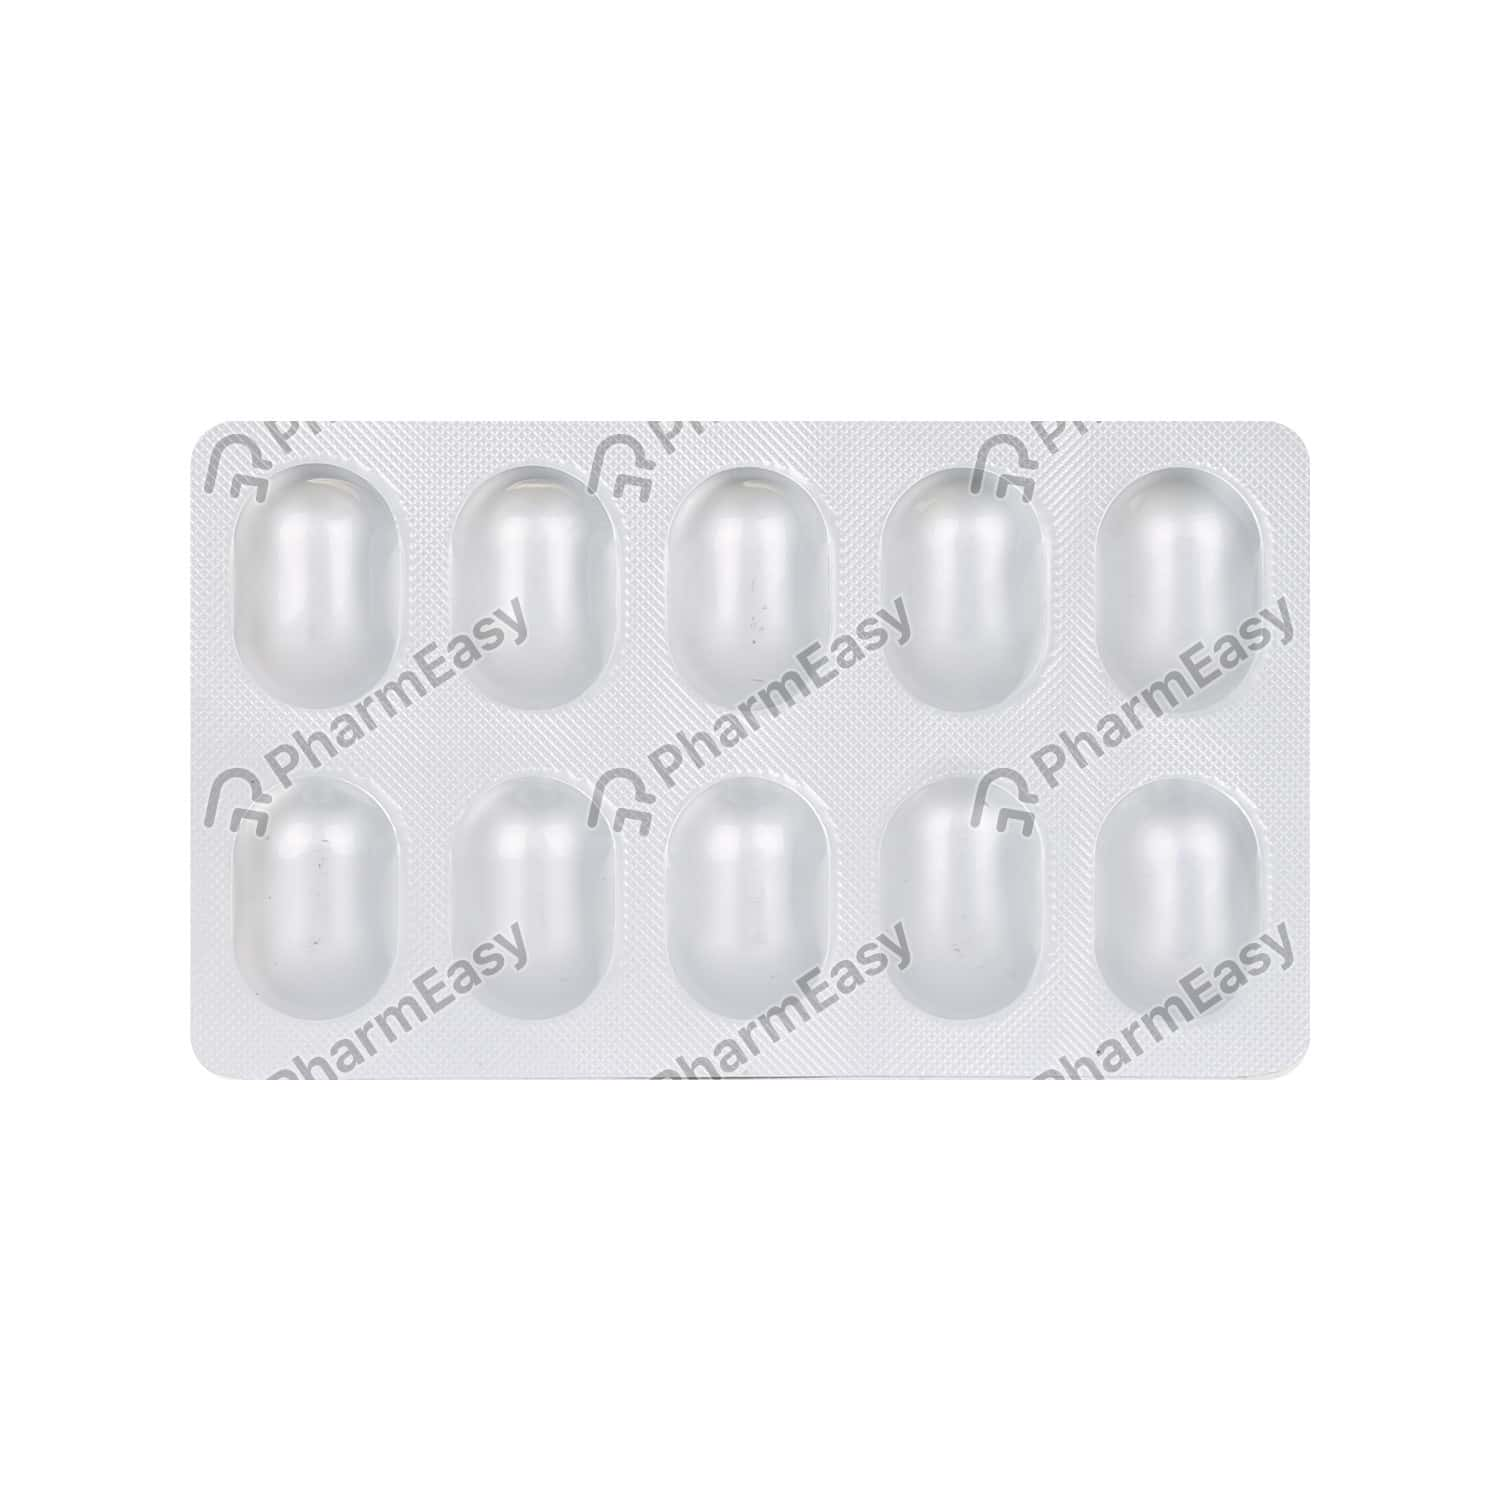 Neksium 40mg Strip Of 10 Tablets